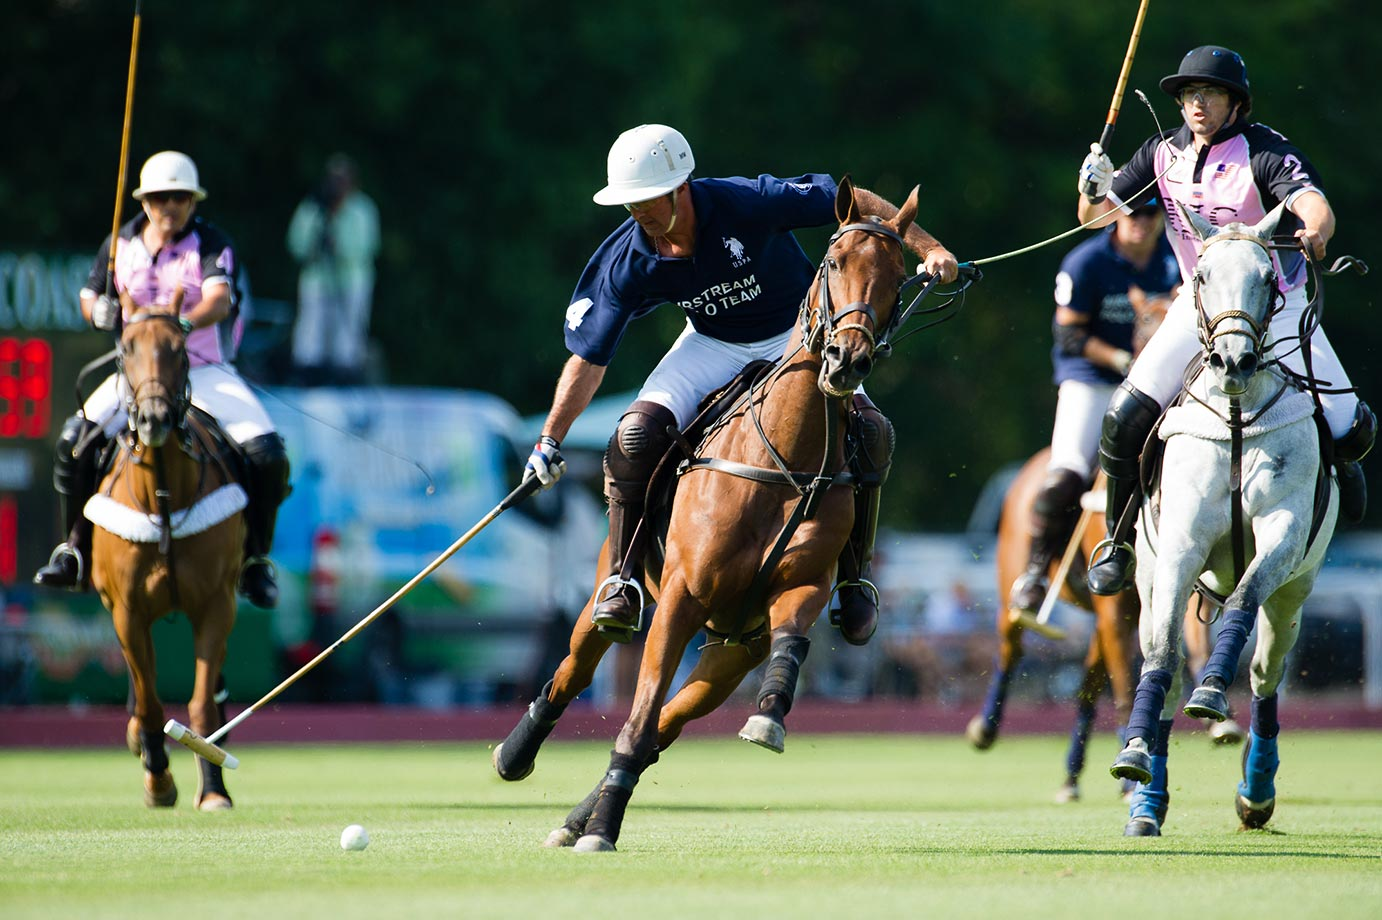 Matias Magrini 8 goaler and the Airstream Polo Team defeated the KIG Polo Team 13-11, enabling them to advance to the USPA and Greenwich Polo Club's 2015 East Coast Open Tournament's semifinals. Despite KIG's loss, it qualified for the semifinals as a result of McLaren's defeat of Turkish Airlines.